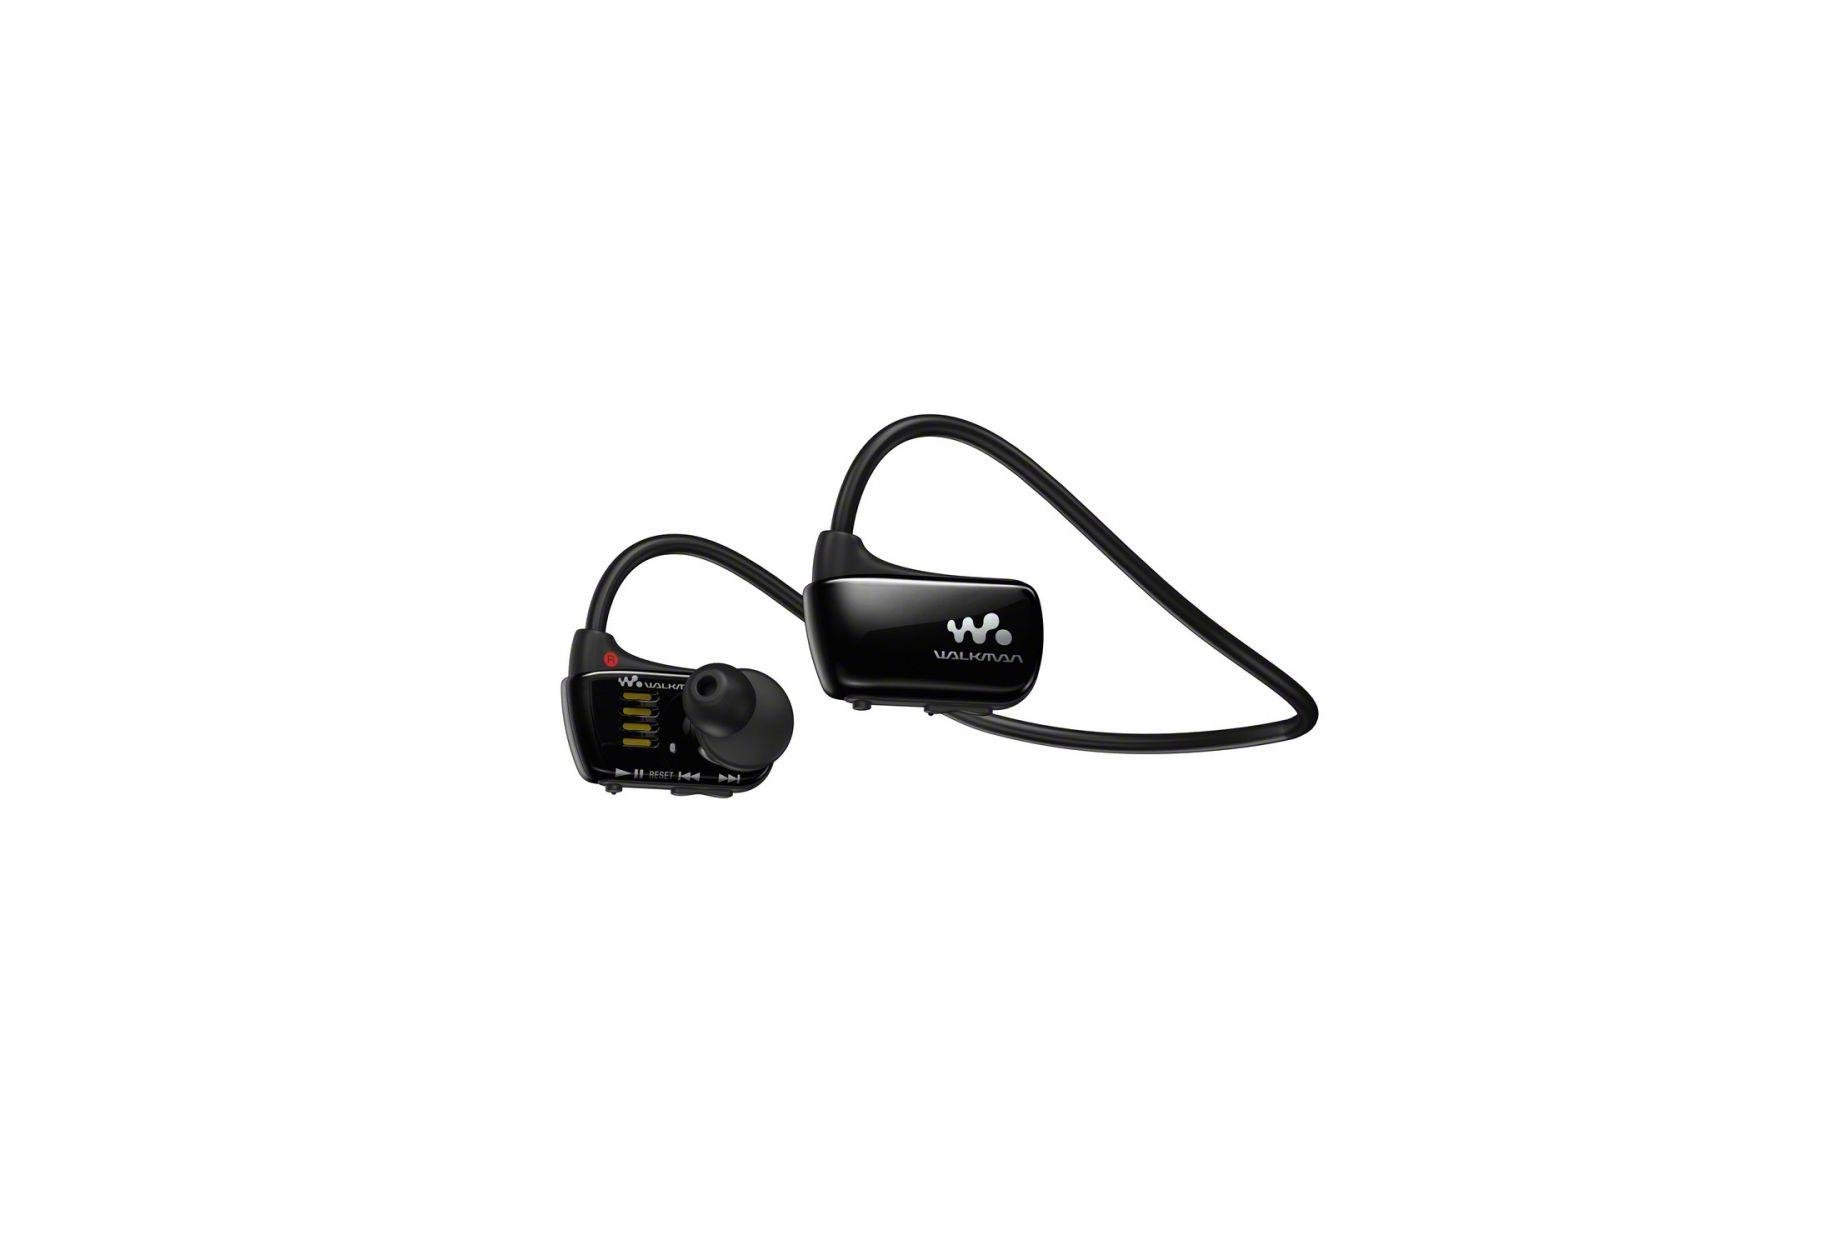 Sony NWZW274B Waterproof Walkman - Black.